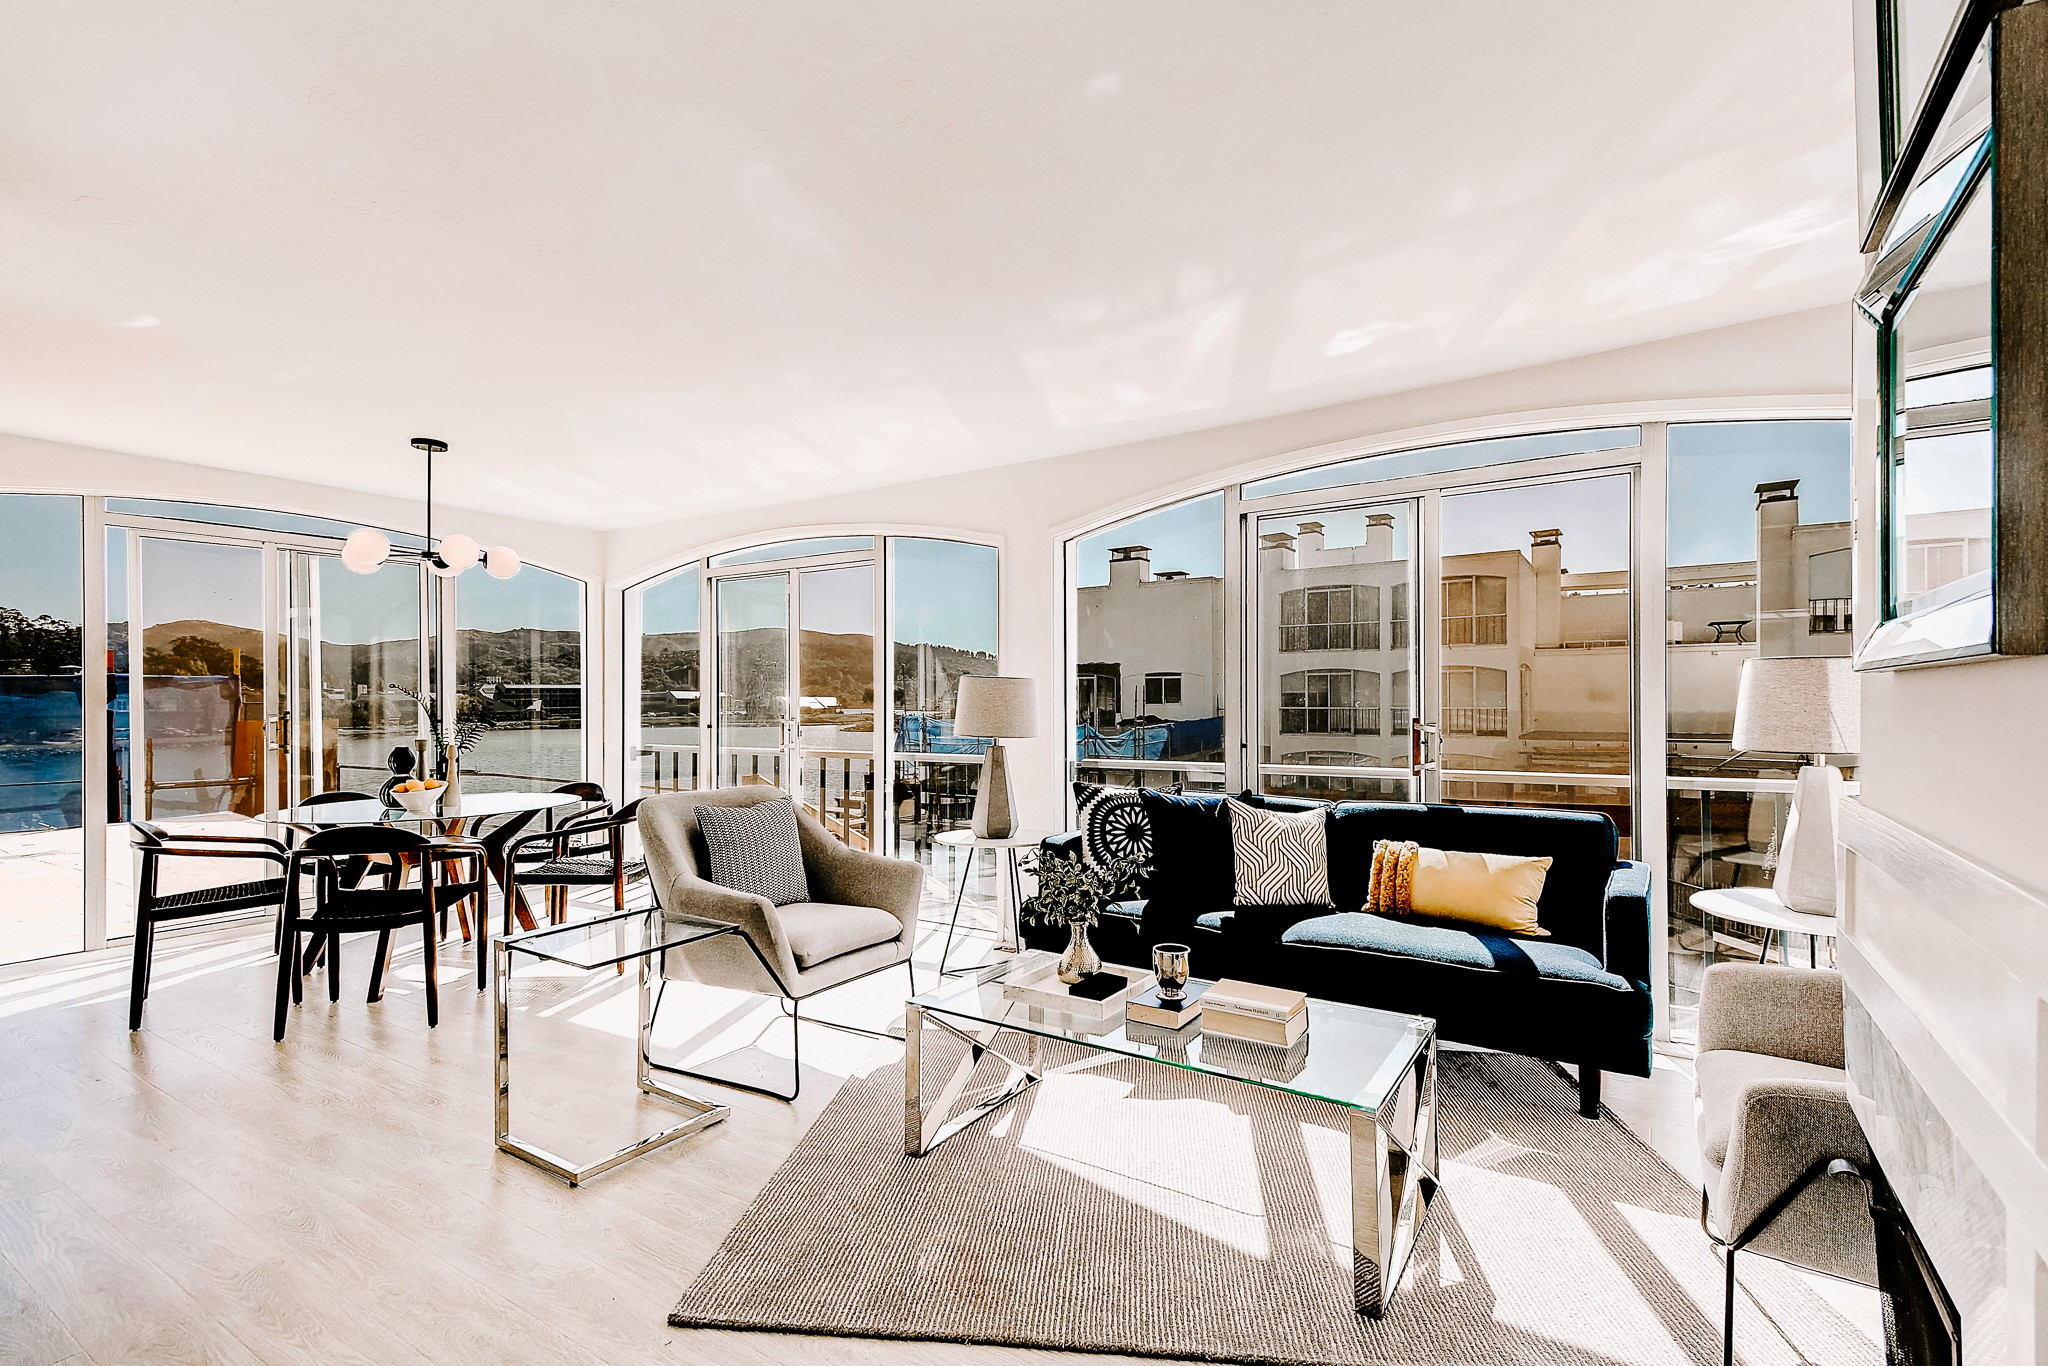 3223 Shelter Bay Avenue-12 Mill Valley Top Realtor - Allie Fornesi on Own Marin County's #1 Real Estate Team.jpg